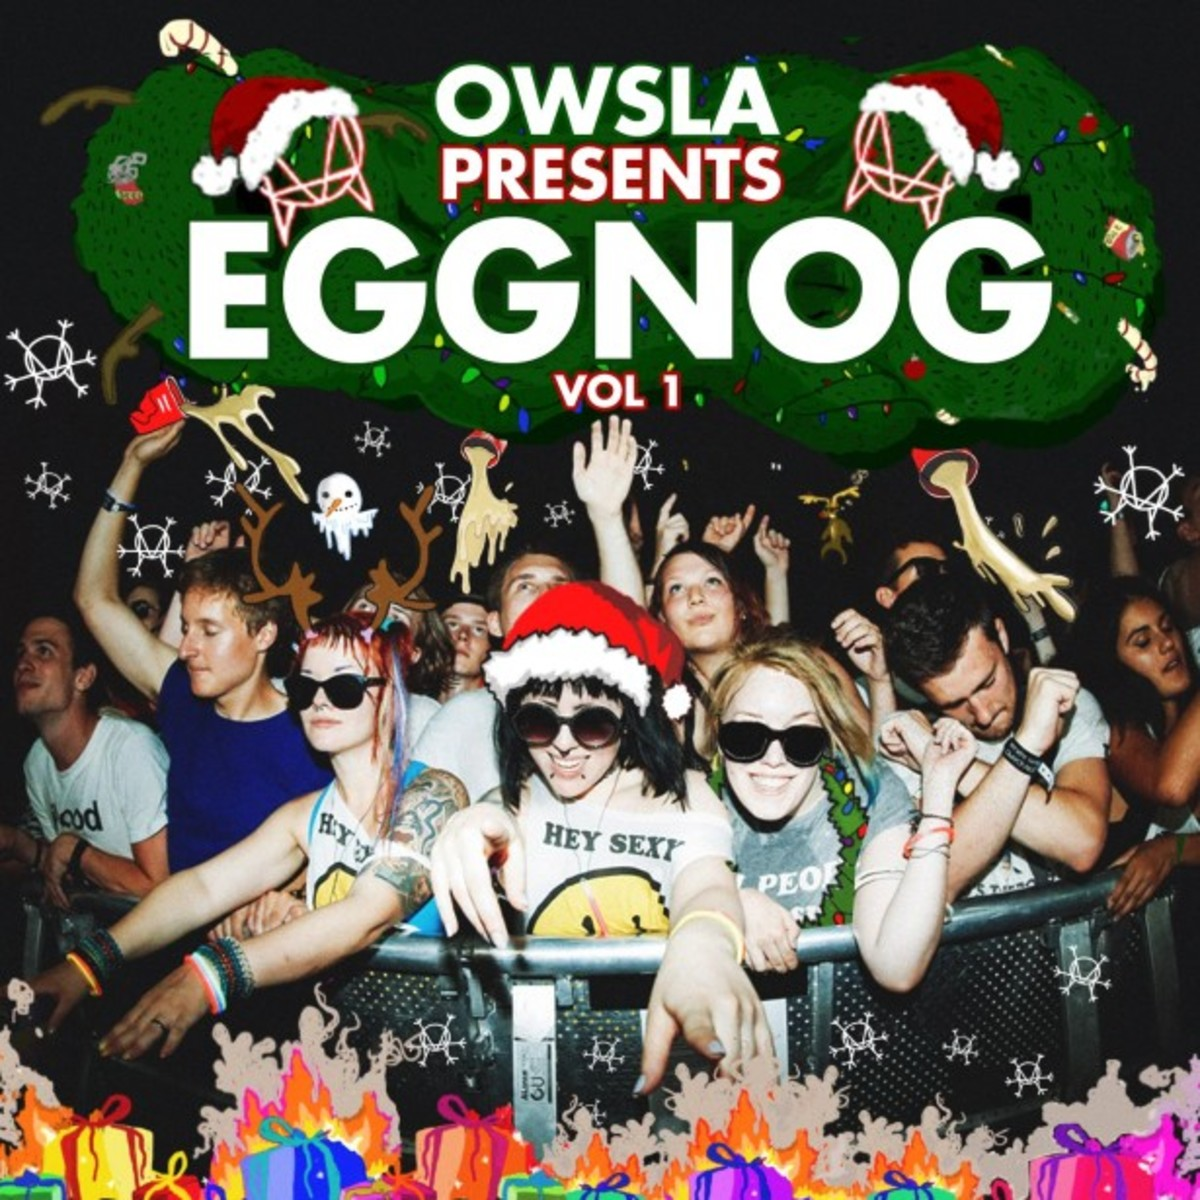 OWSLA Eggnog Compilation Great For Any Festivus